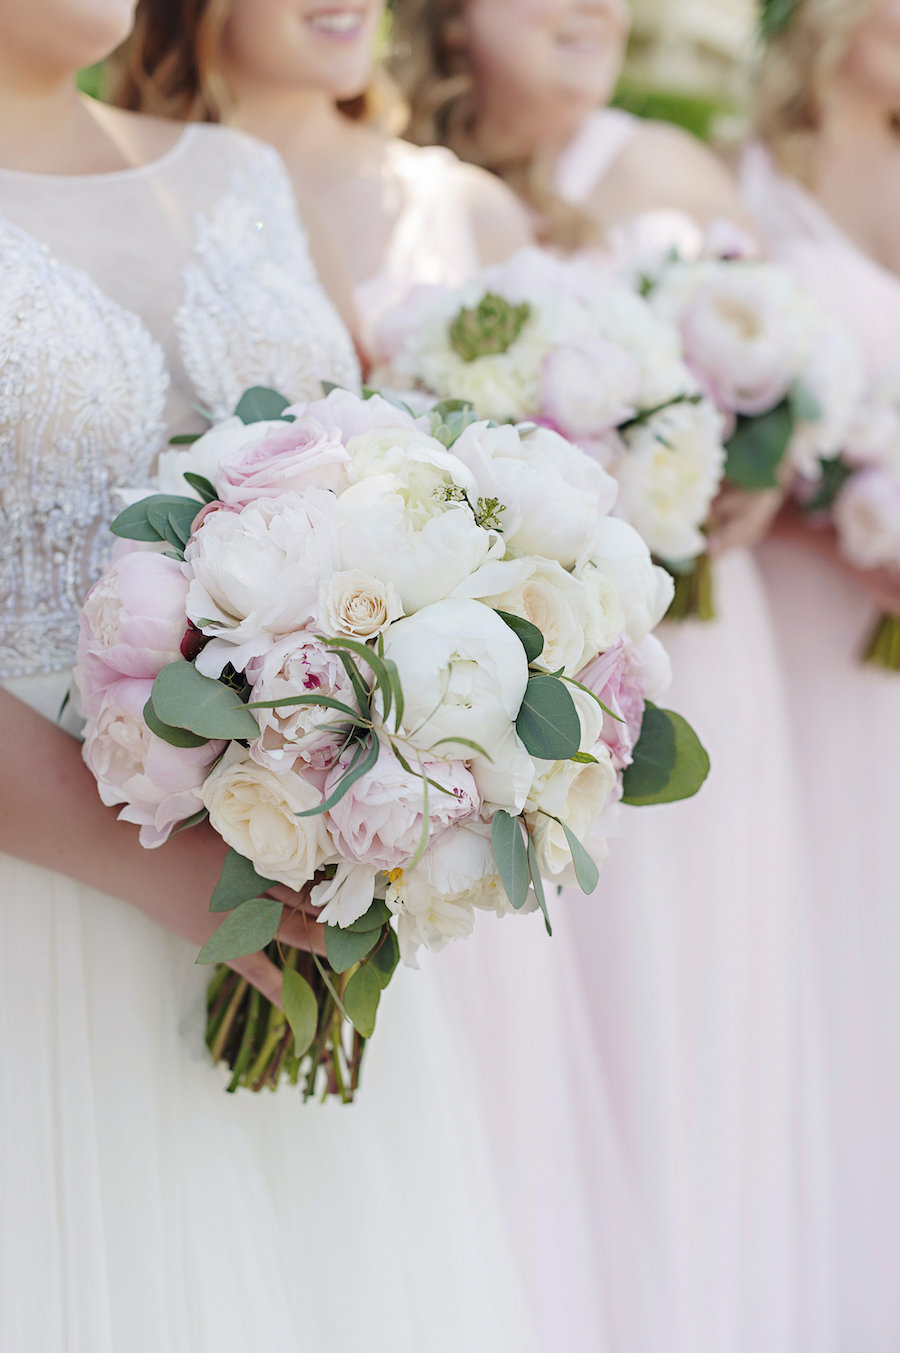 Pink and white bridesmaids bouquet for outdoor summer wedding at Smale Riverfront Park in Cincinnati